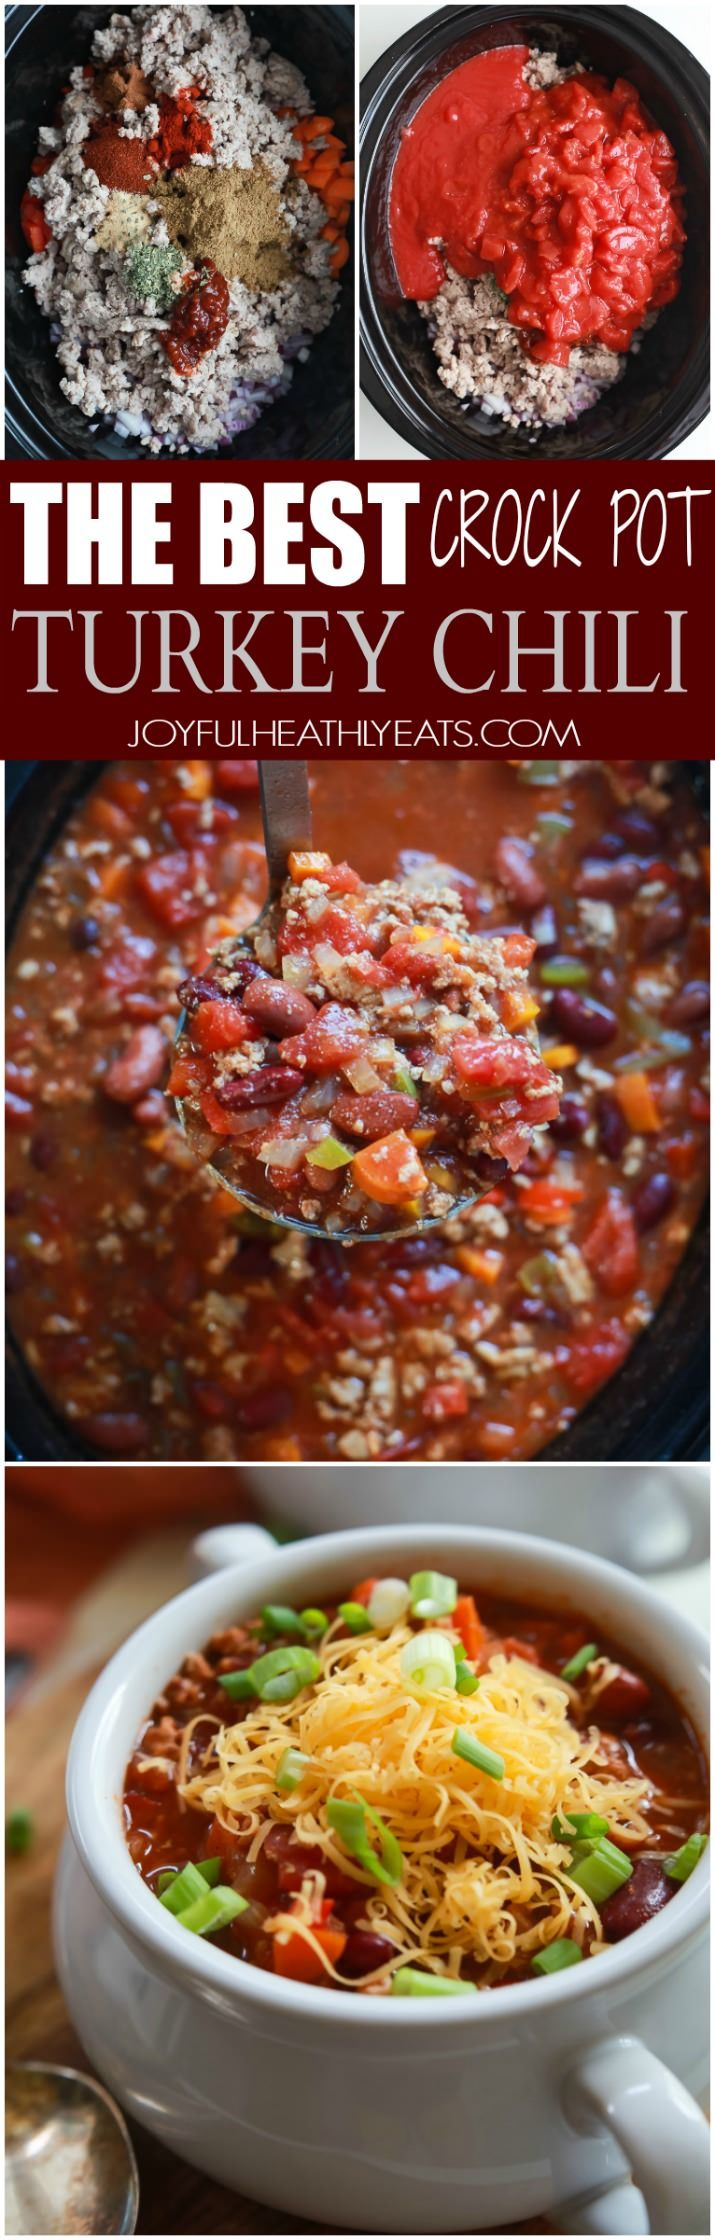 The BEST Crock Pot Chili you'll ever make and under 300 calories a serving! Plus it has a surprise spice you would've never thought to add. This Chili Recipe will blow your mom's out of the water ... sorry mom! |joyfulhealthyeats.com